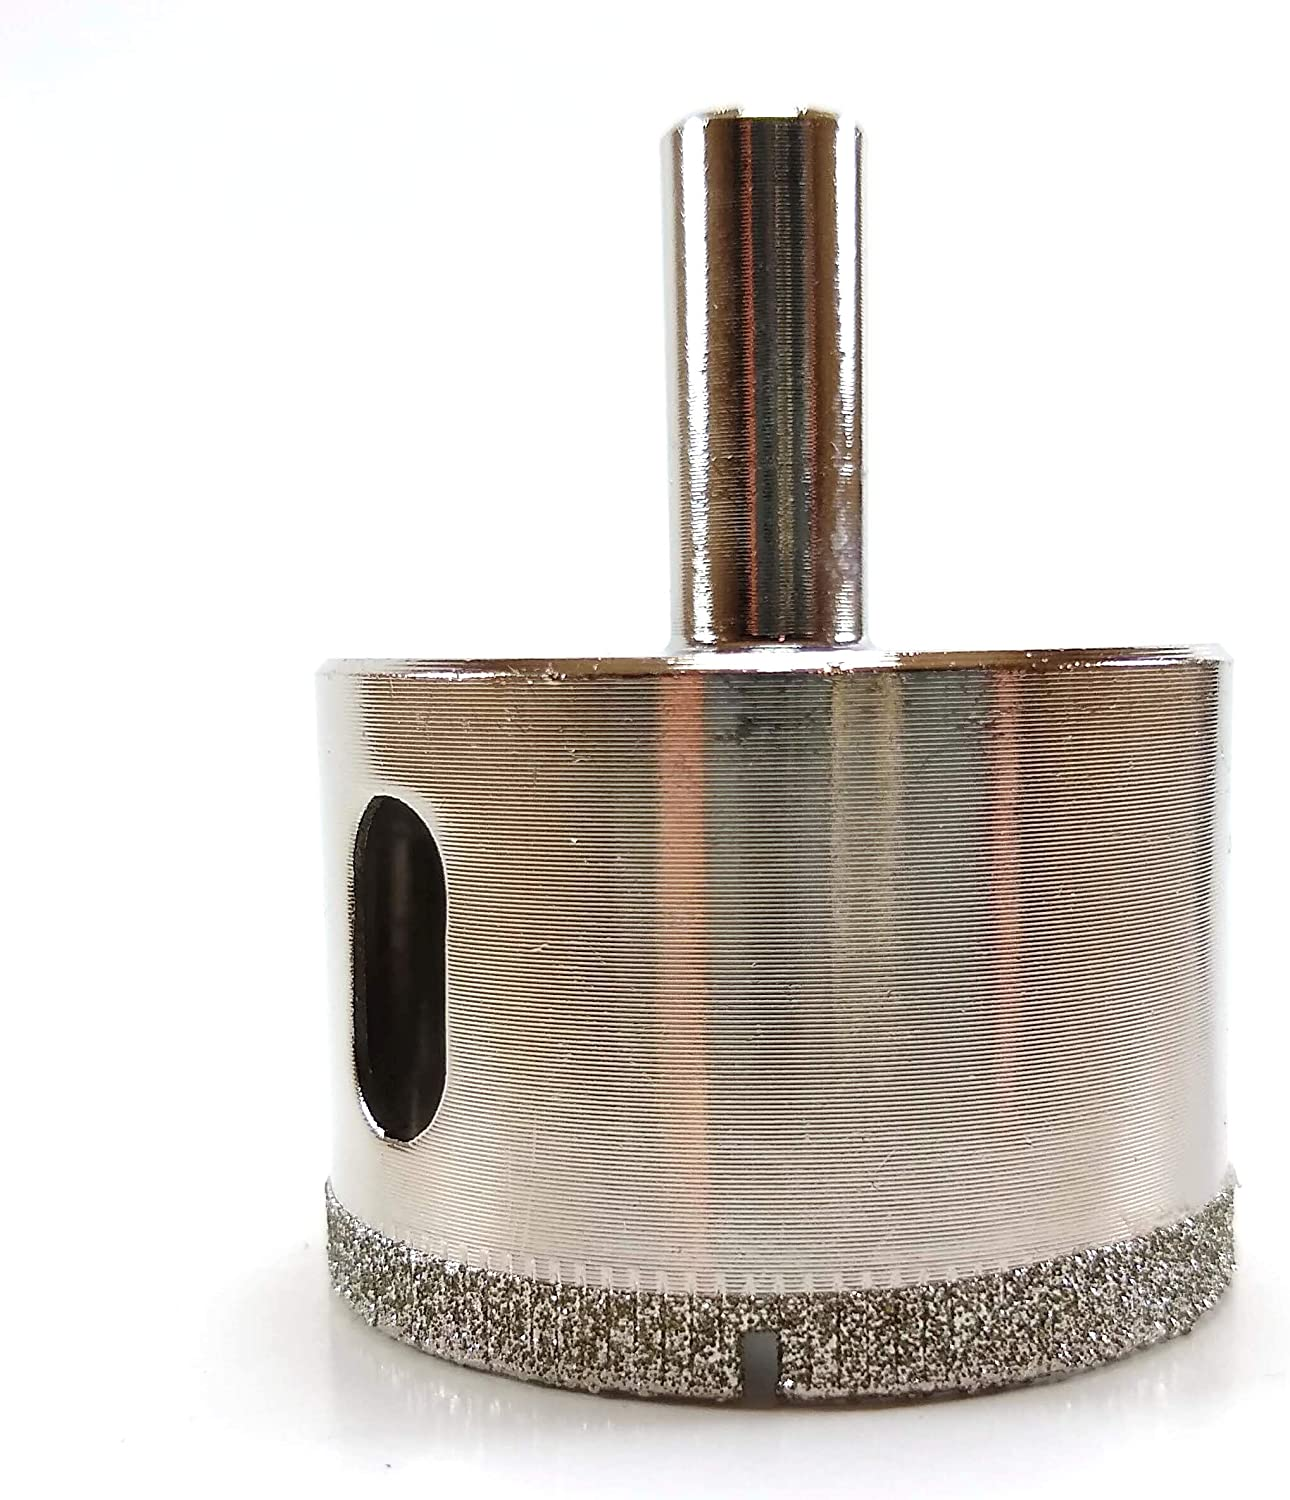 Details about  /SHDIATOOL Diamond Core Drill Bits 1 Inch For Porcelain Ceramic Tile FREE SHIP